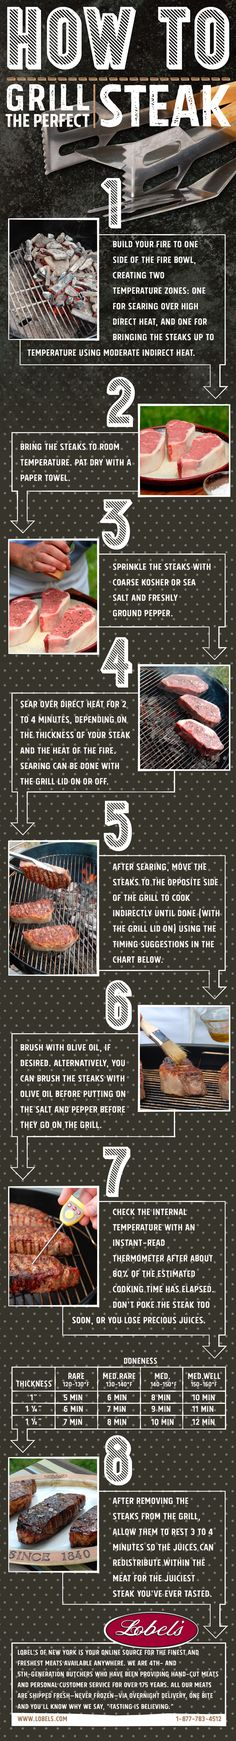 Do you know how to grill the perfect steak? Let America's #1 family of butchers show you how using the indirect-heat method.